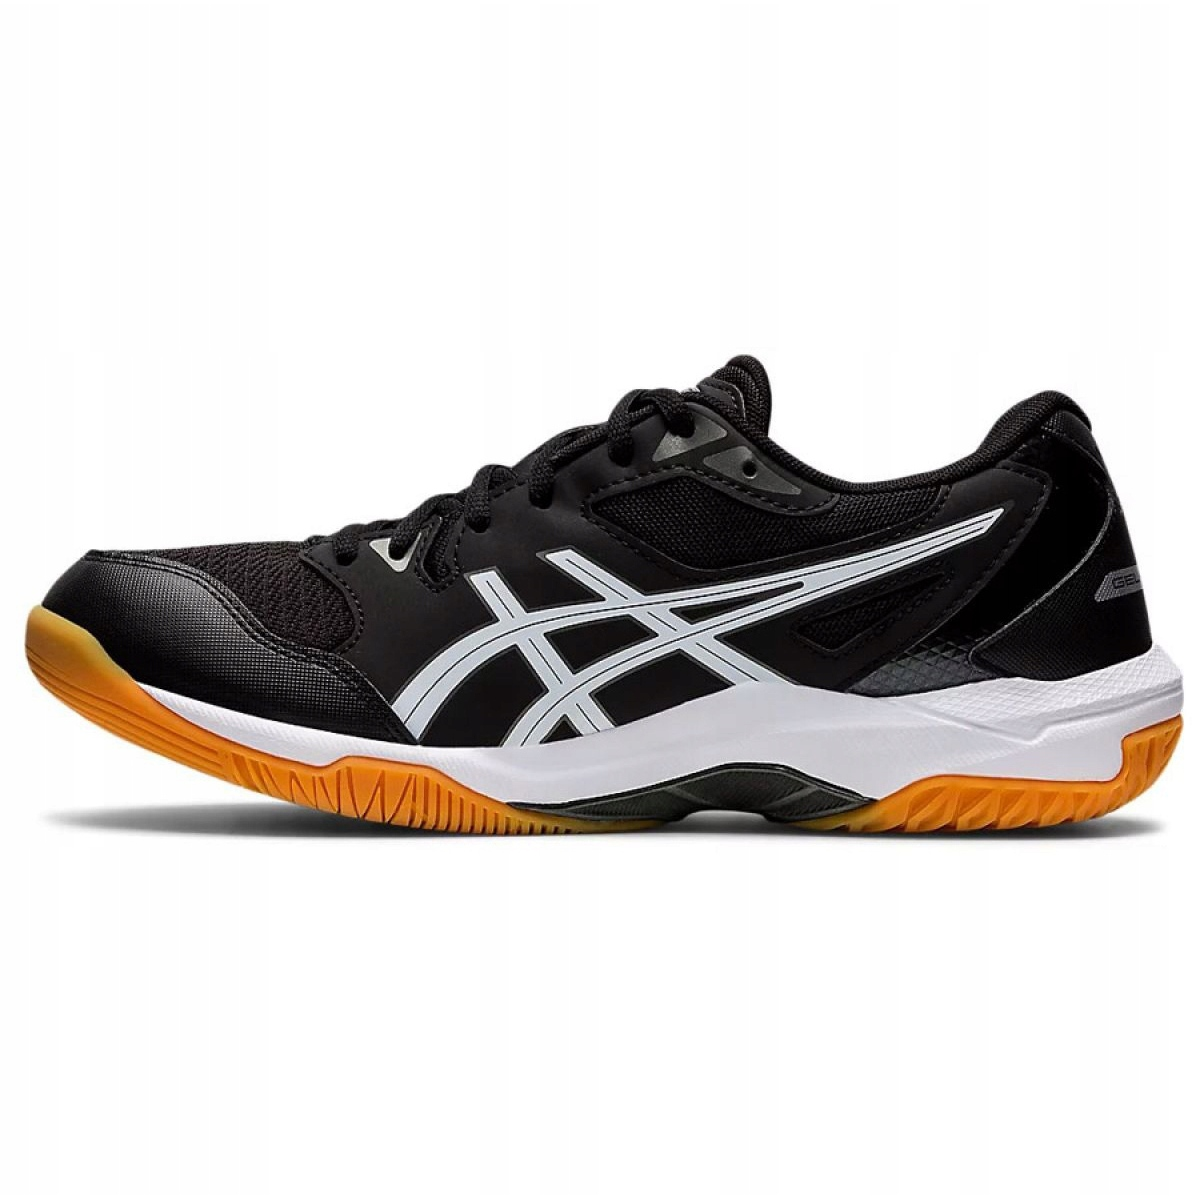 Asics Gel-Rocket 10 M 1071A054 009 volleyball shoes multicolored black